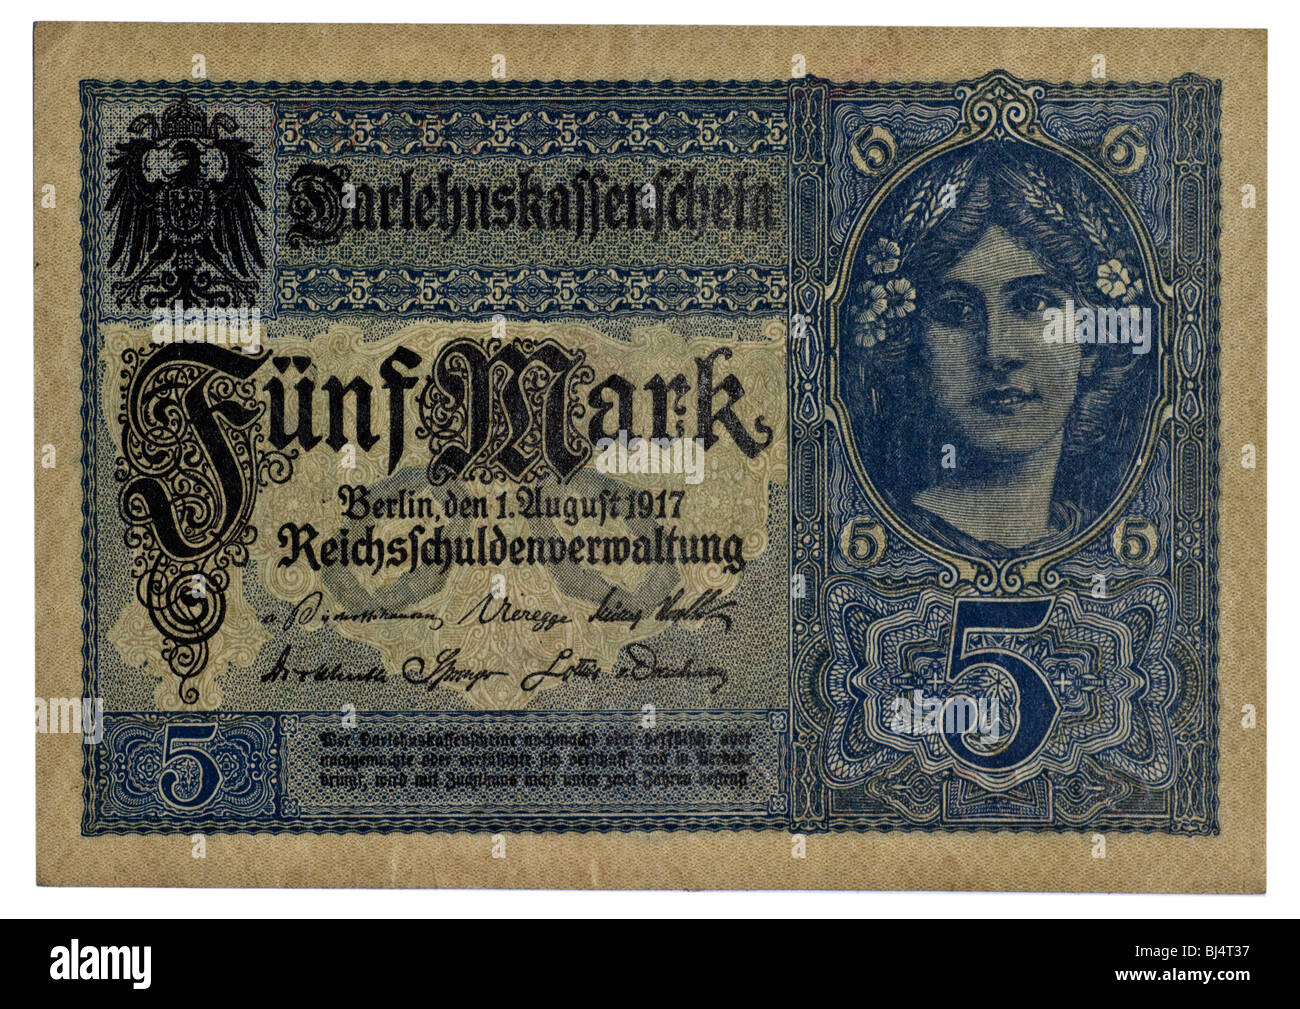 Front of the Loan Society banknote over 5 marks of the National Debt Office, Berlin, Germany, August 1st 1917 - Stock Image